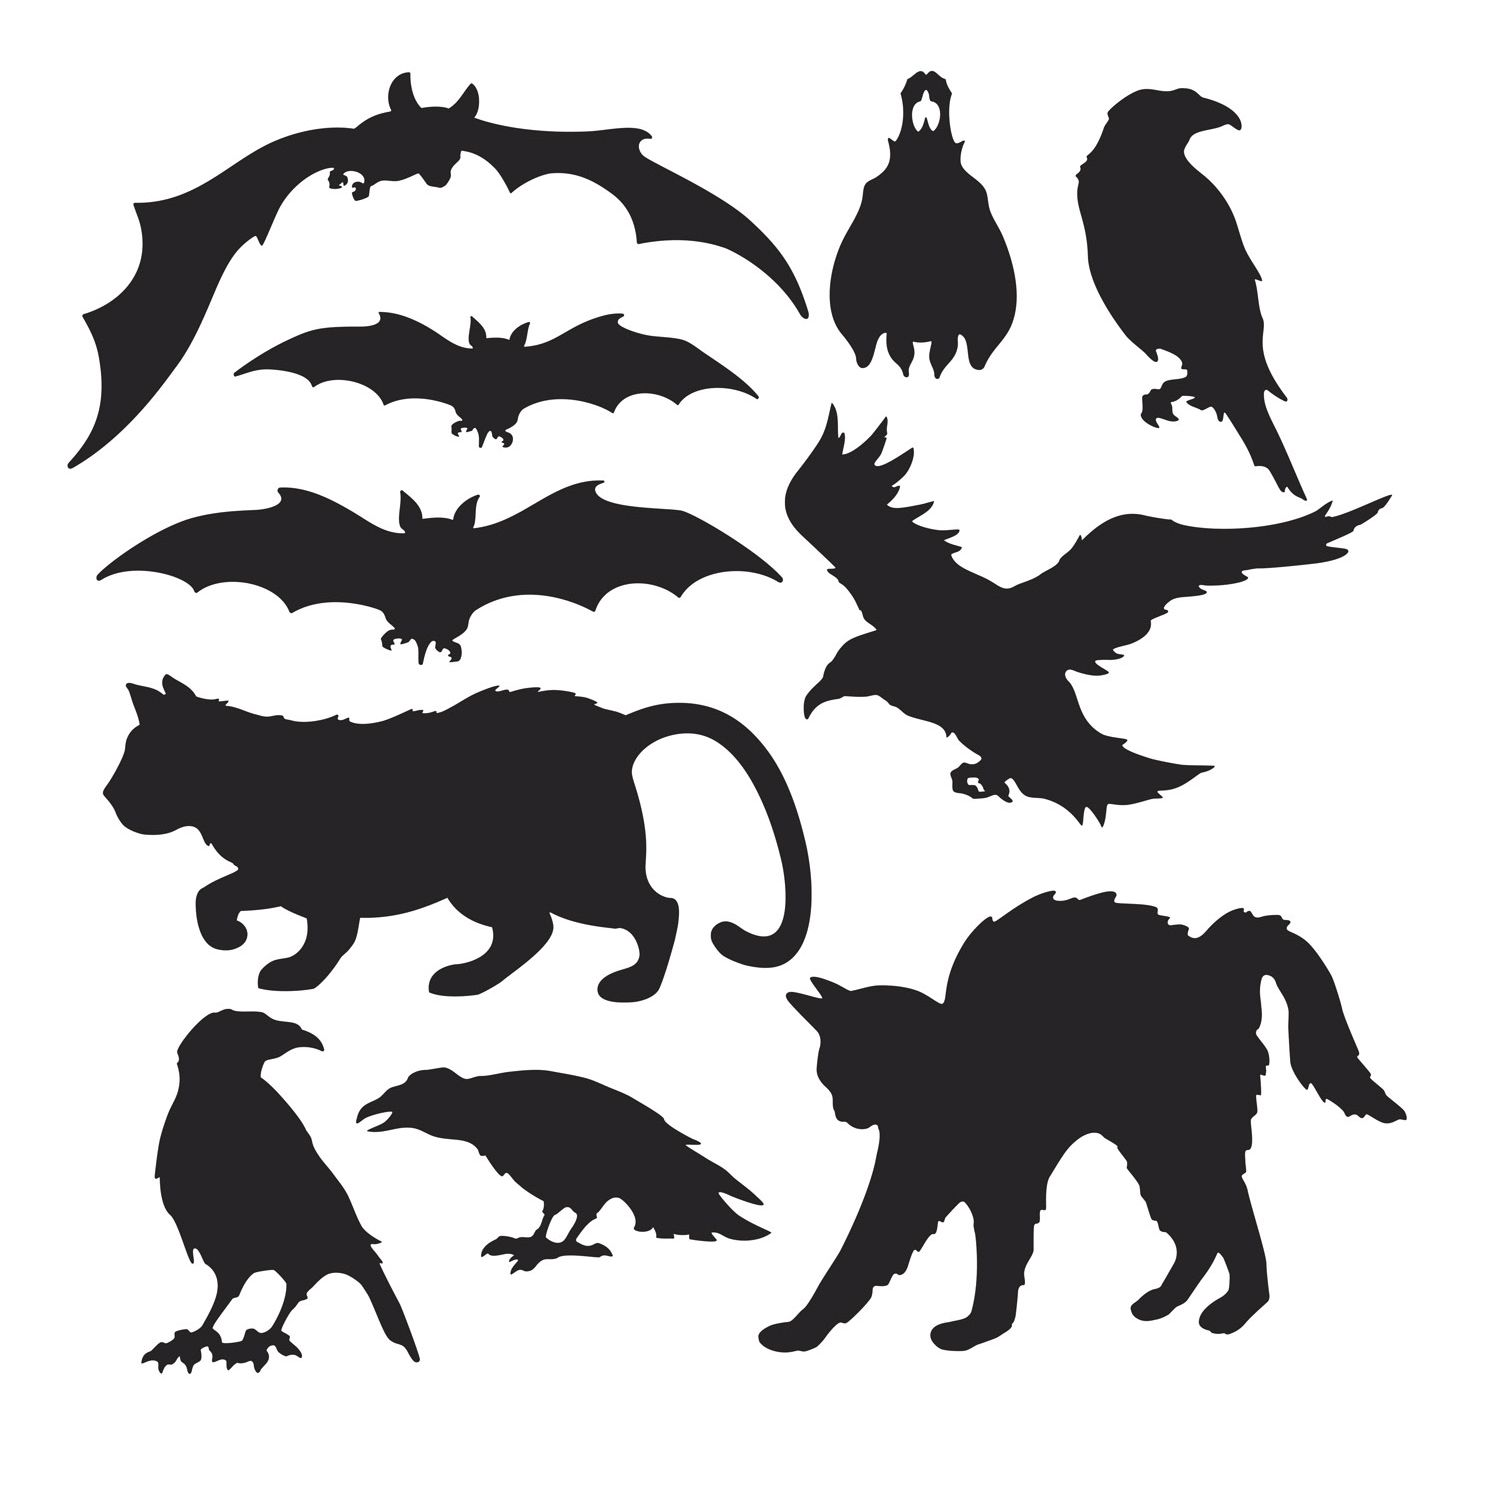 pack of 10 halloween silhouette cutouts halloween party decorations